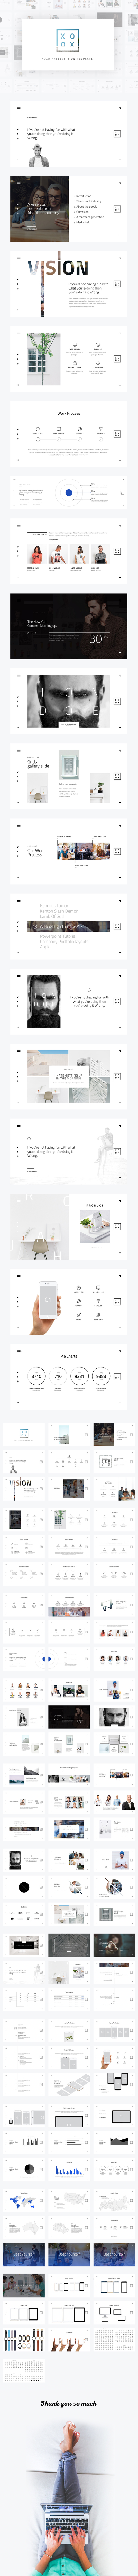 xoxo minimal powerpoint template by markzugelberg graphicriver